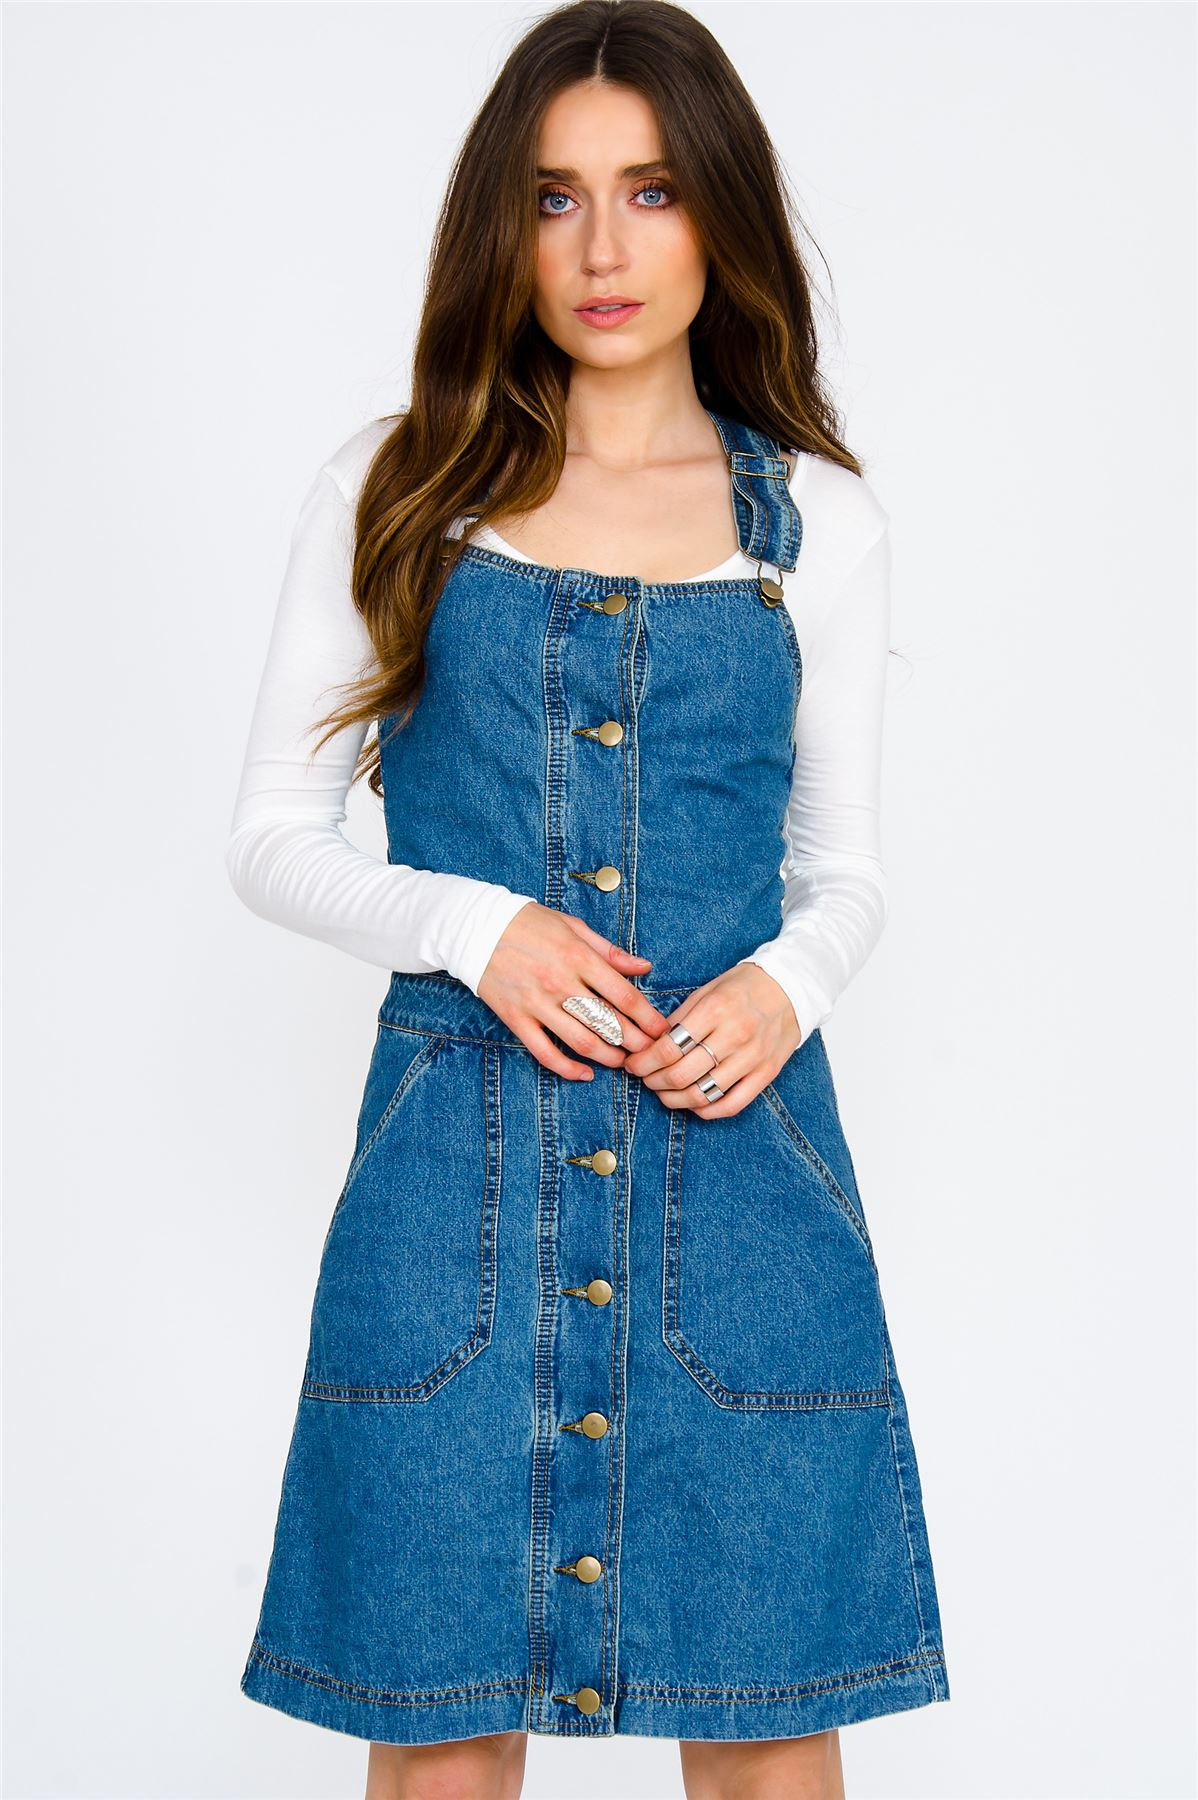 This is a lovely ladies dungaree dress. The dress is colored in blue and white stripes, and will help the wearer to look like a queen! It is a very high duty material and will be able to be washed inside the machine, and worn to any event you have planned.